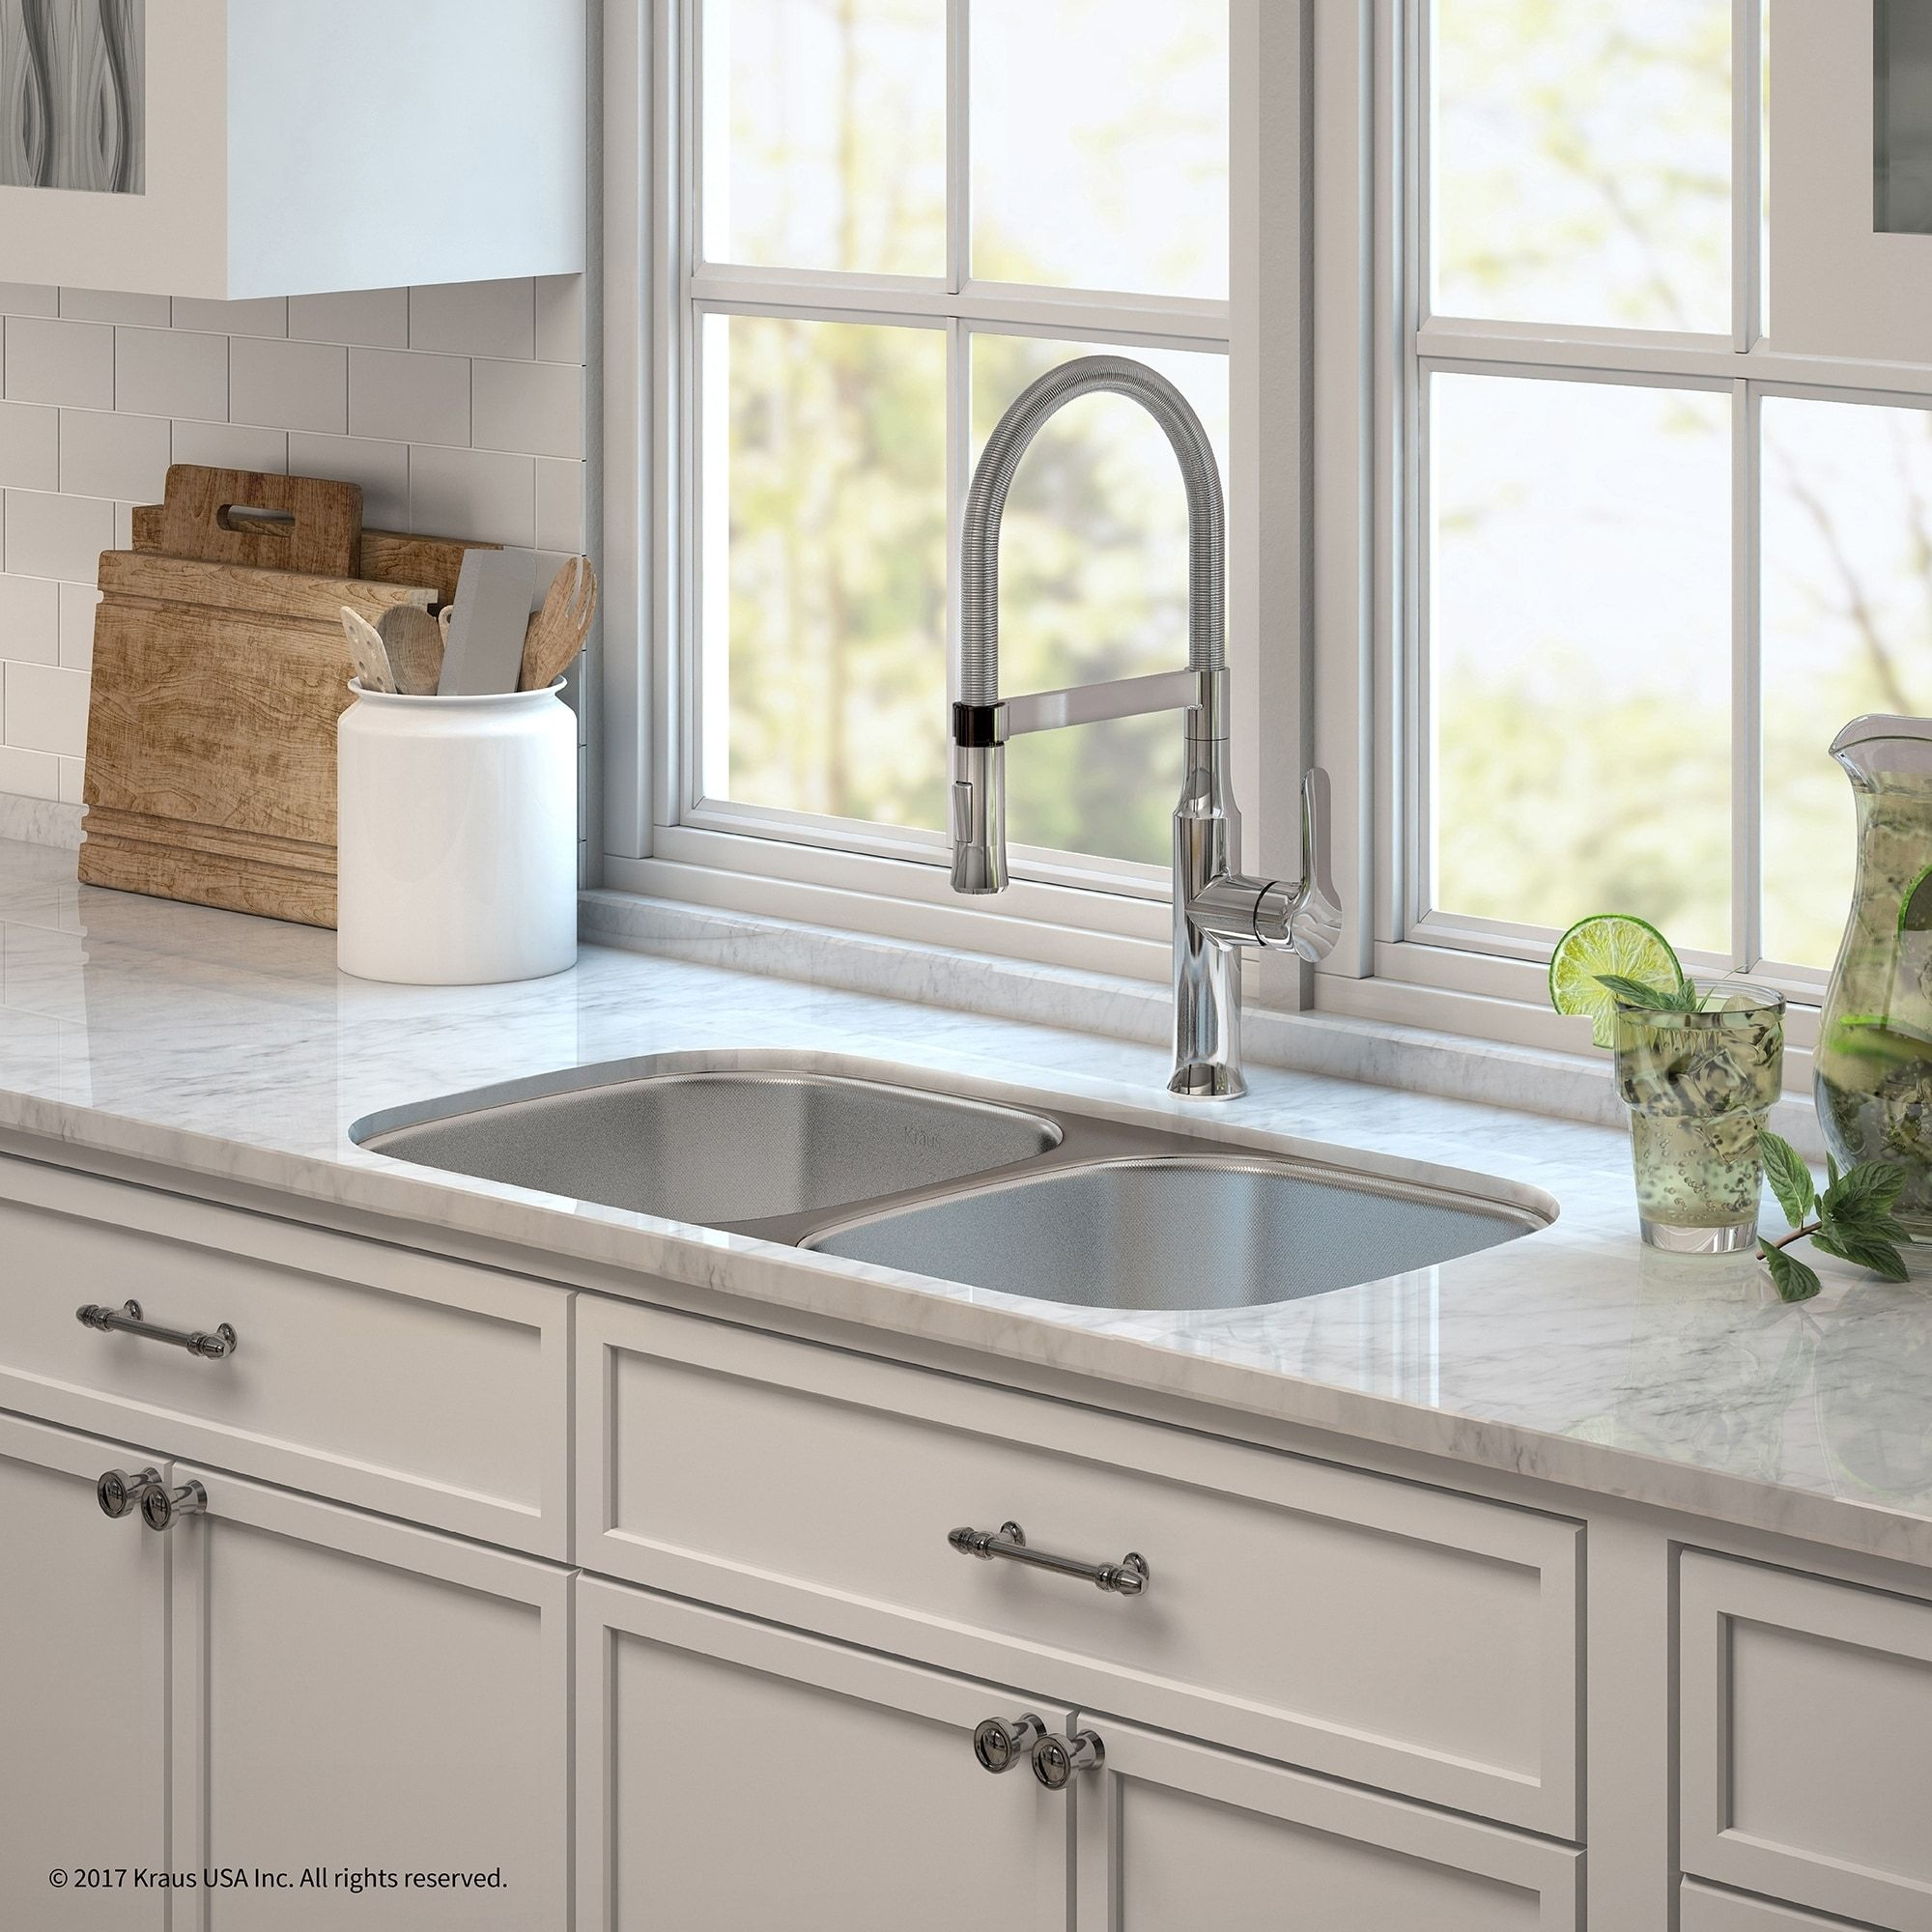 Kraus 32 Kitchen Sink & Nola Commercial Faucet With Soap Dispenser Unique Kitchen Sink Soap Dispenser 2018